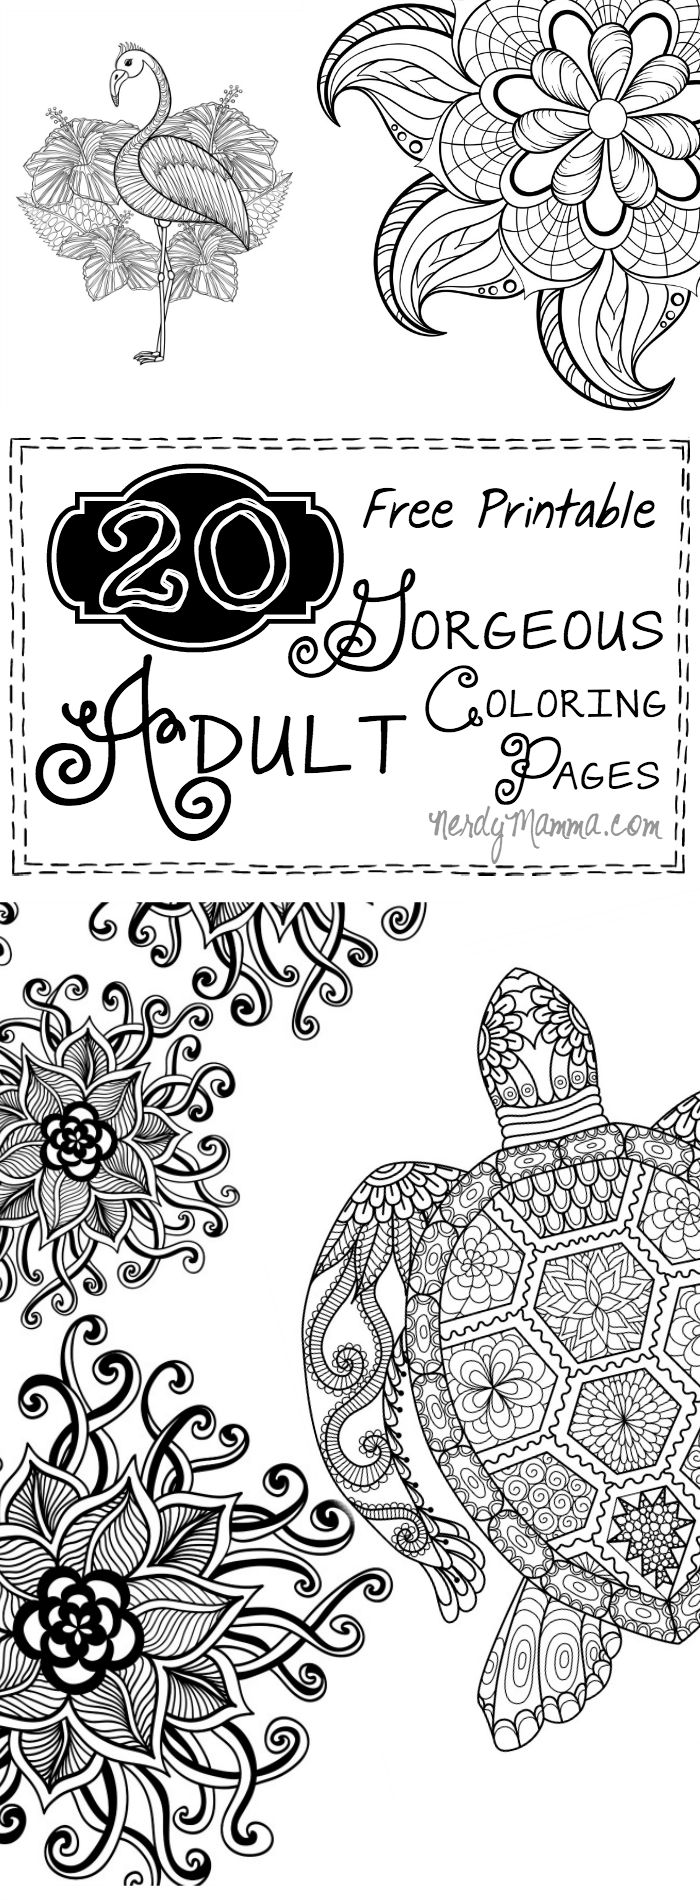 Best 25+ Coloring book info ideas on Pinterest | Adult coloring ...